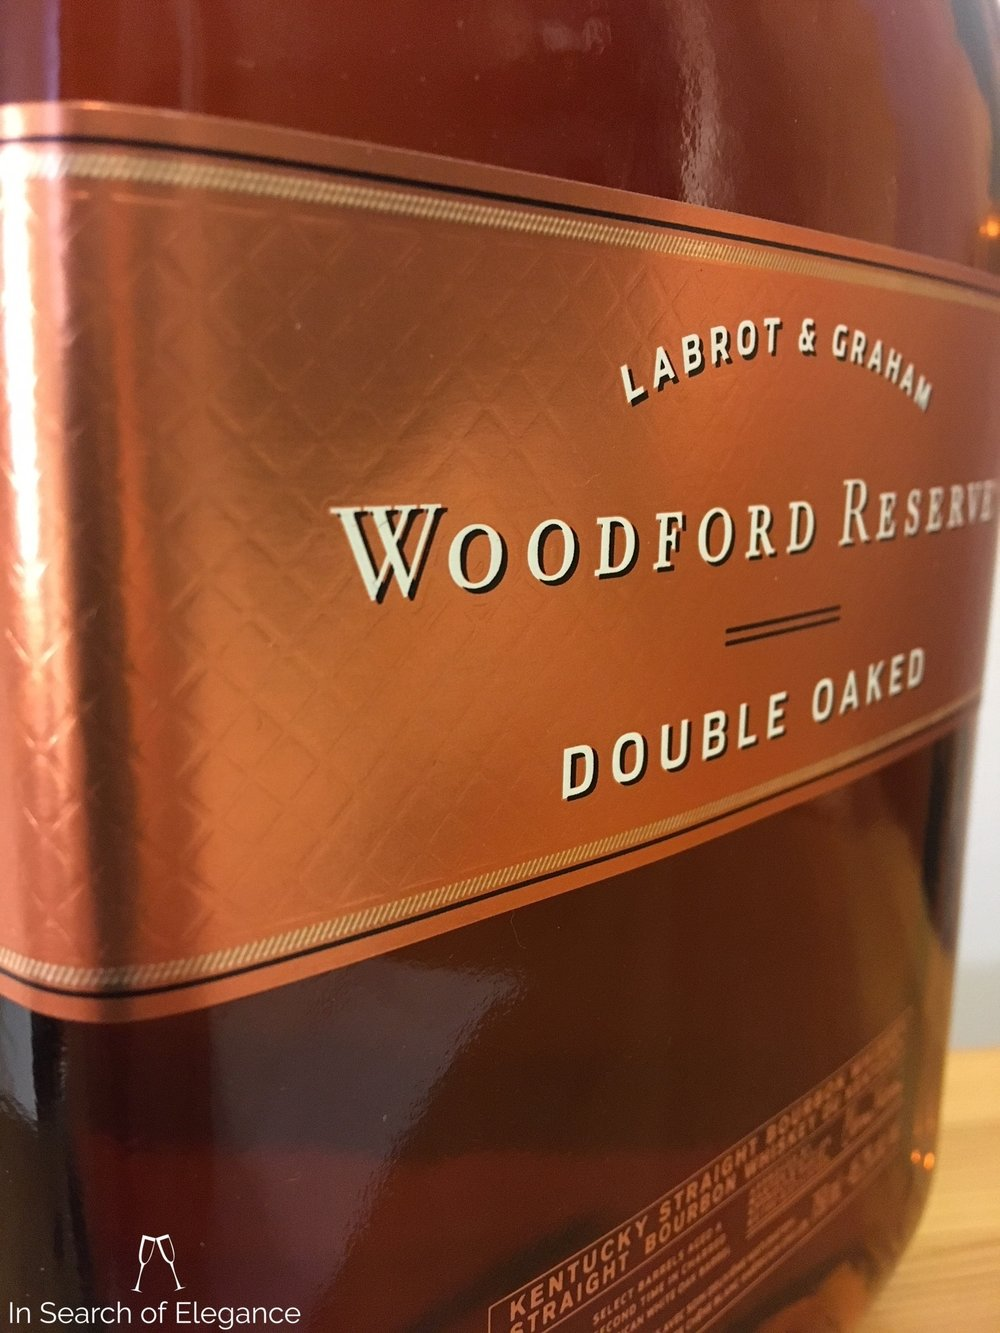 Woodford Reserve Double Oaked.jpg